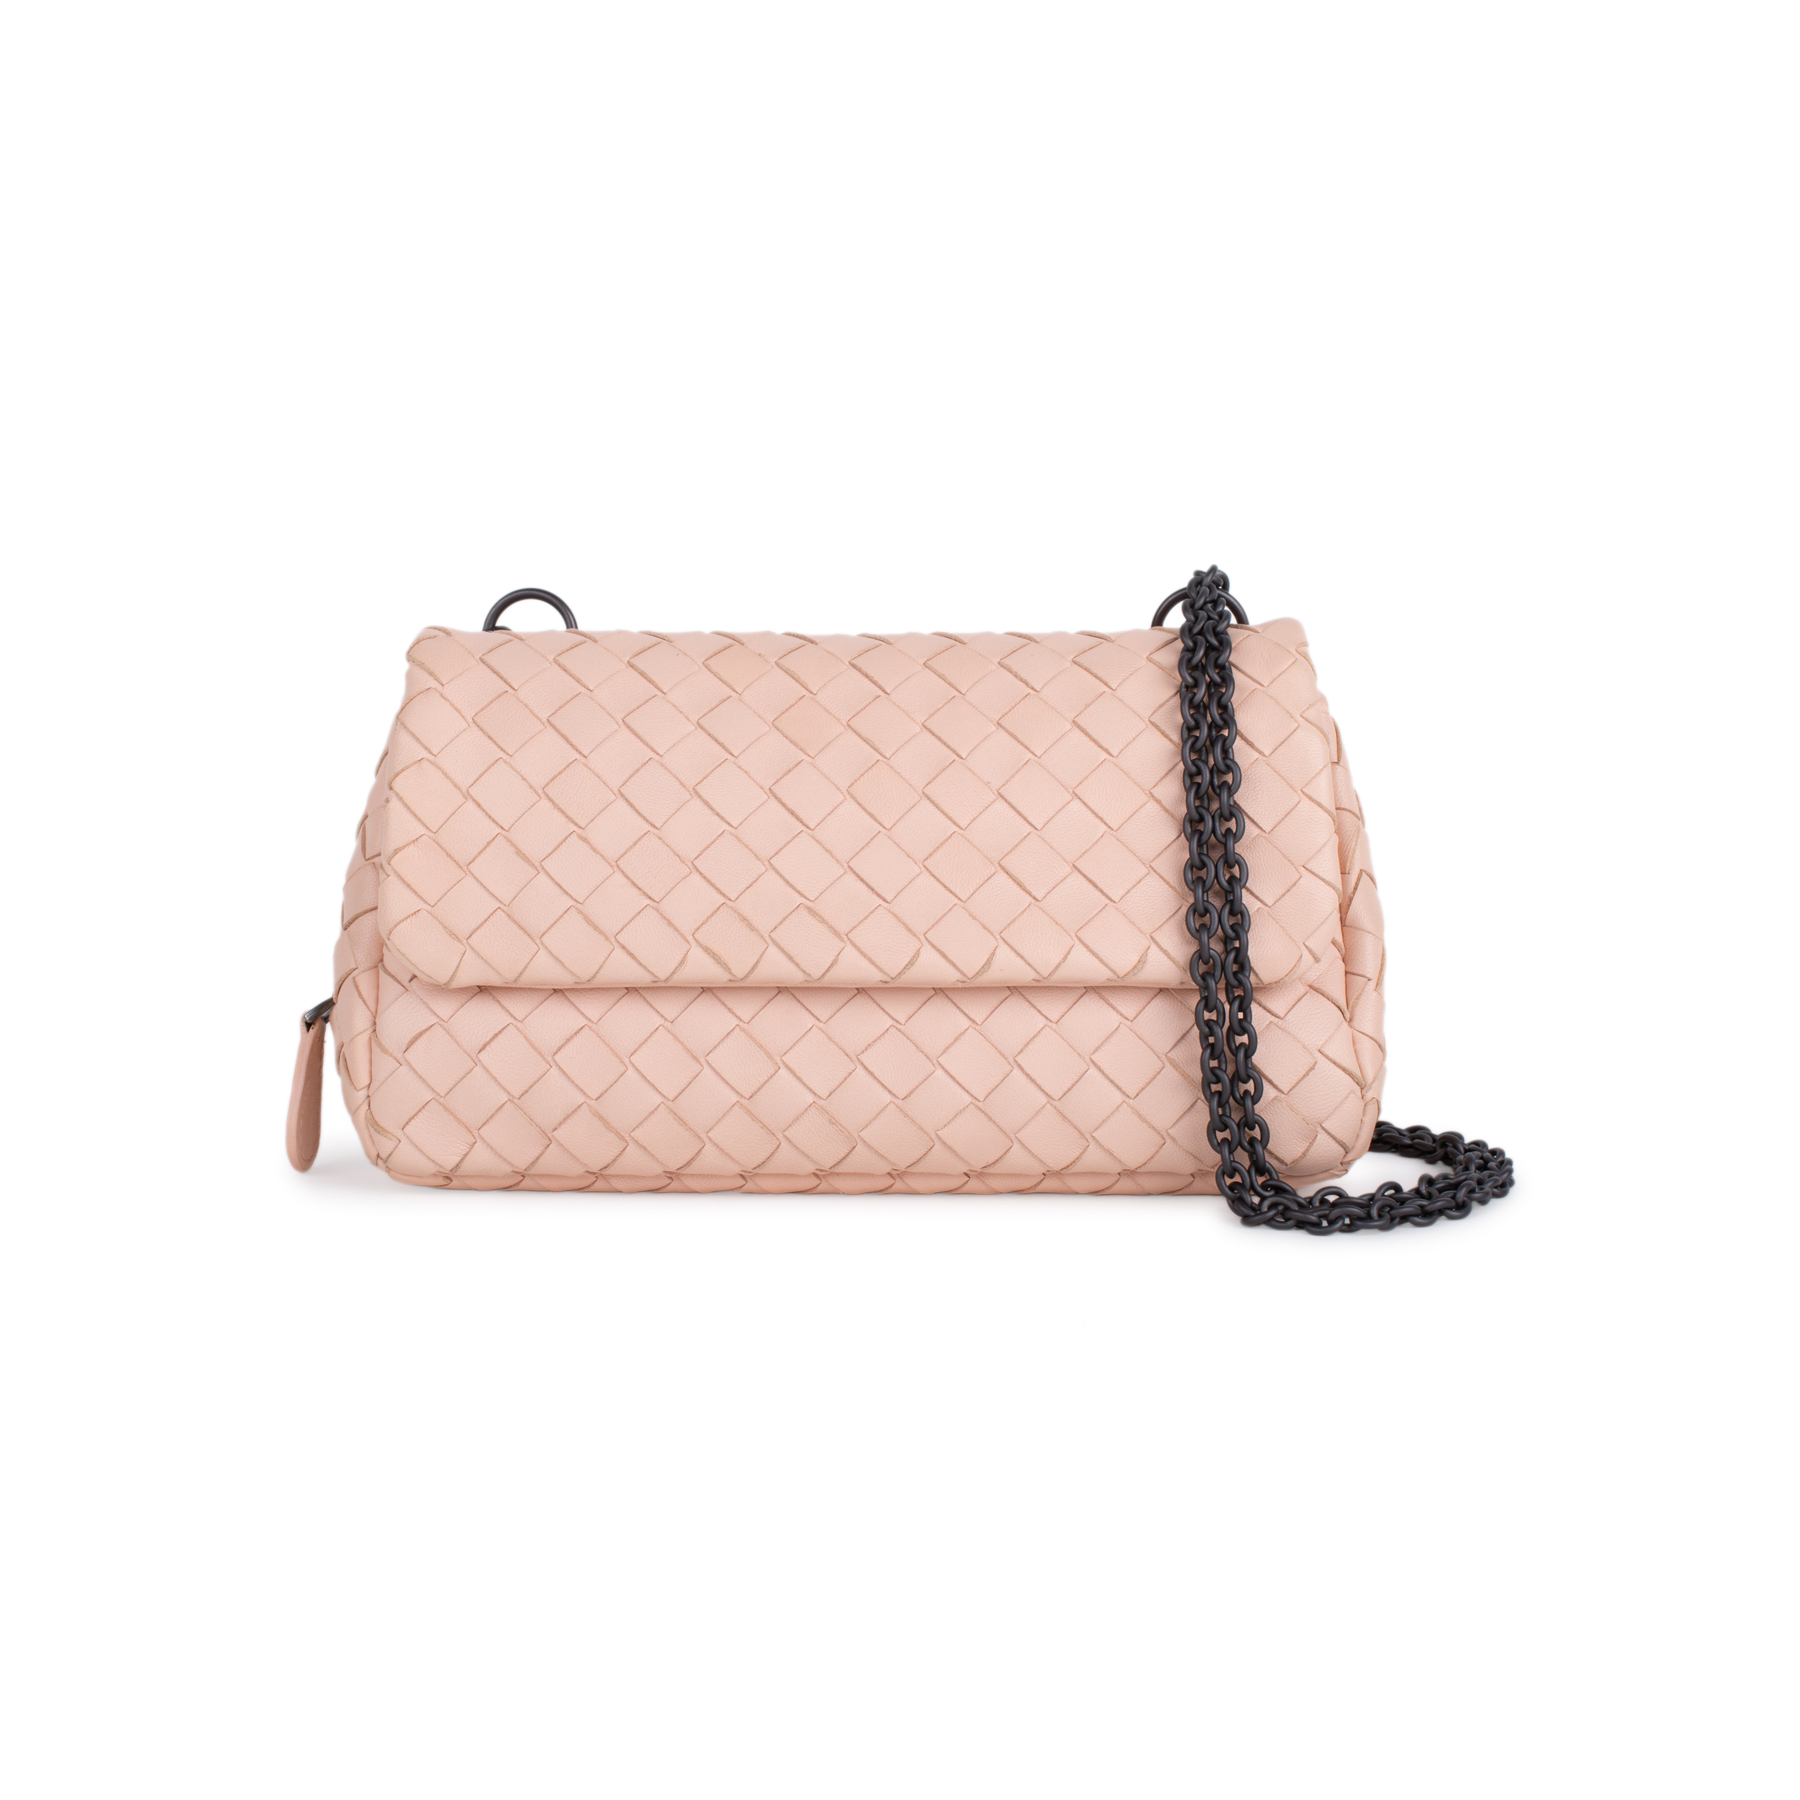 4bfb1baead Authentic Second Hand Bottega Veneta Intrecciato Mini Crossbody Bag  (PSS-434-00010)